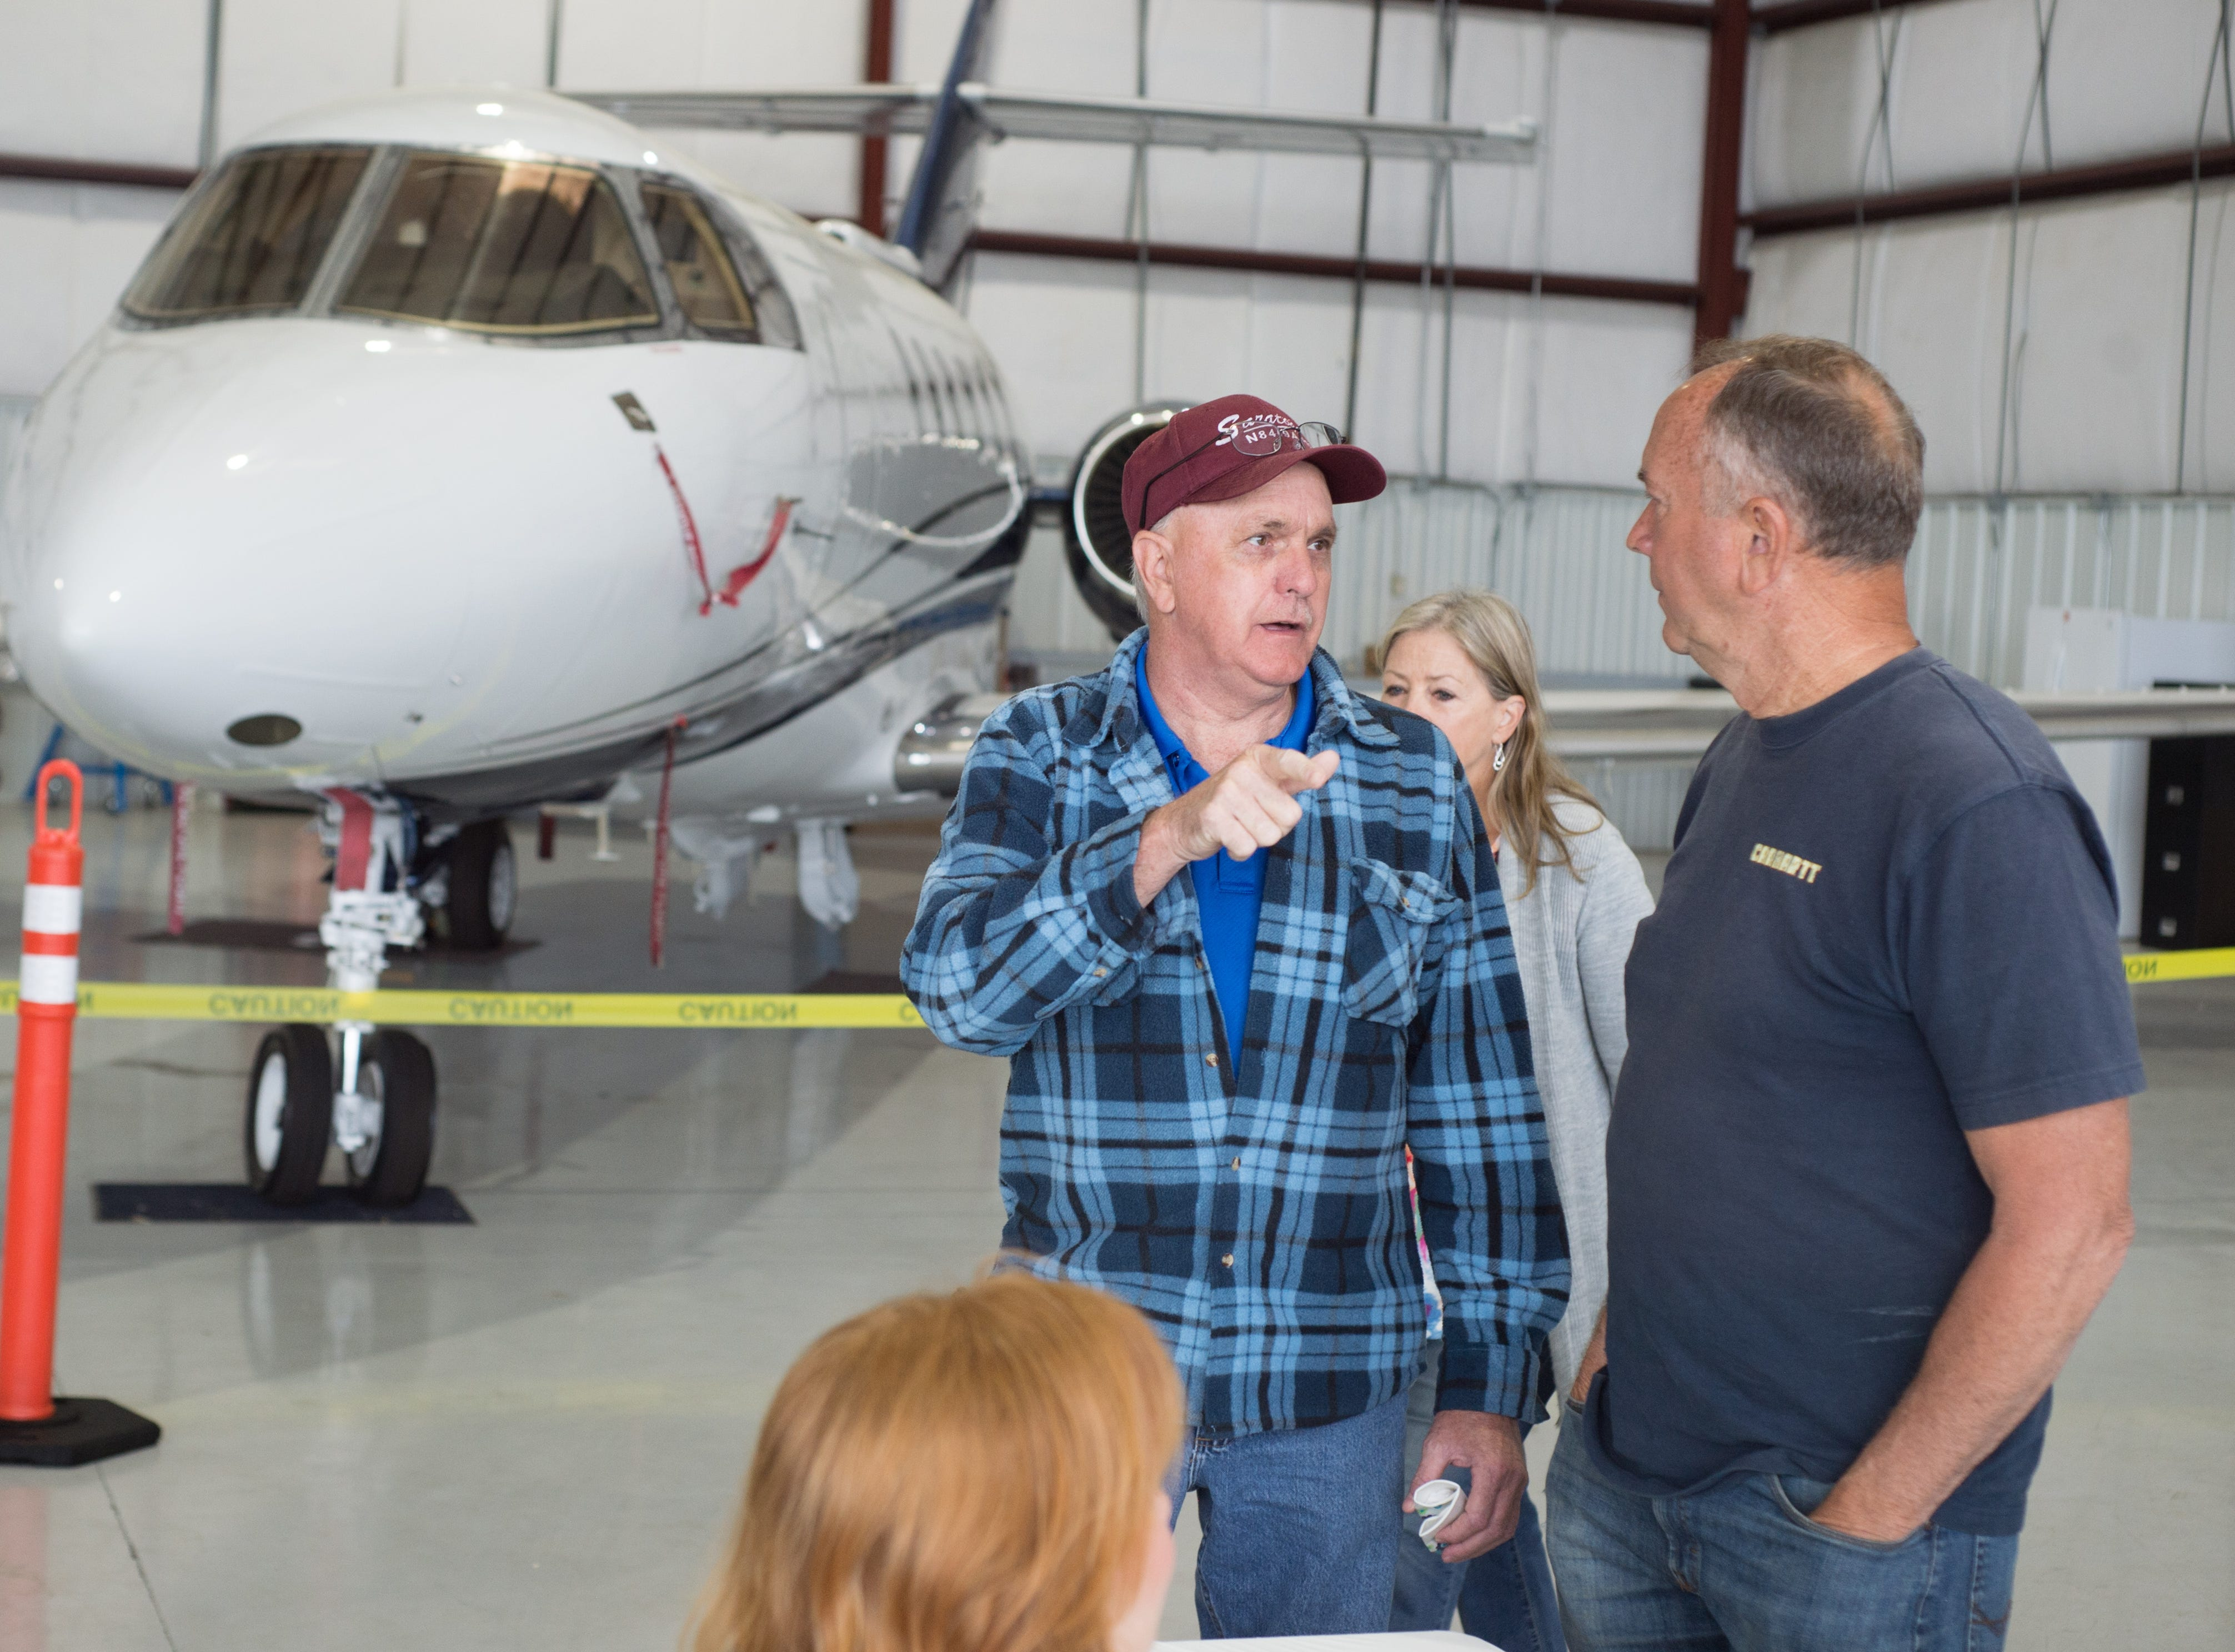 Attendees chat during a Fly-In Breakfast at the Sumner County Regional Airport in Gallatin on Saturday, April 13.